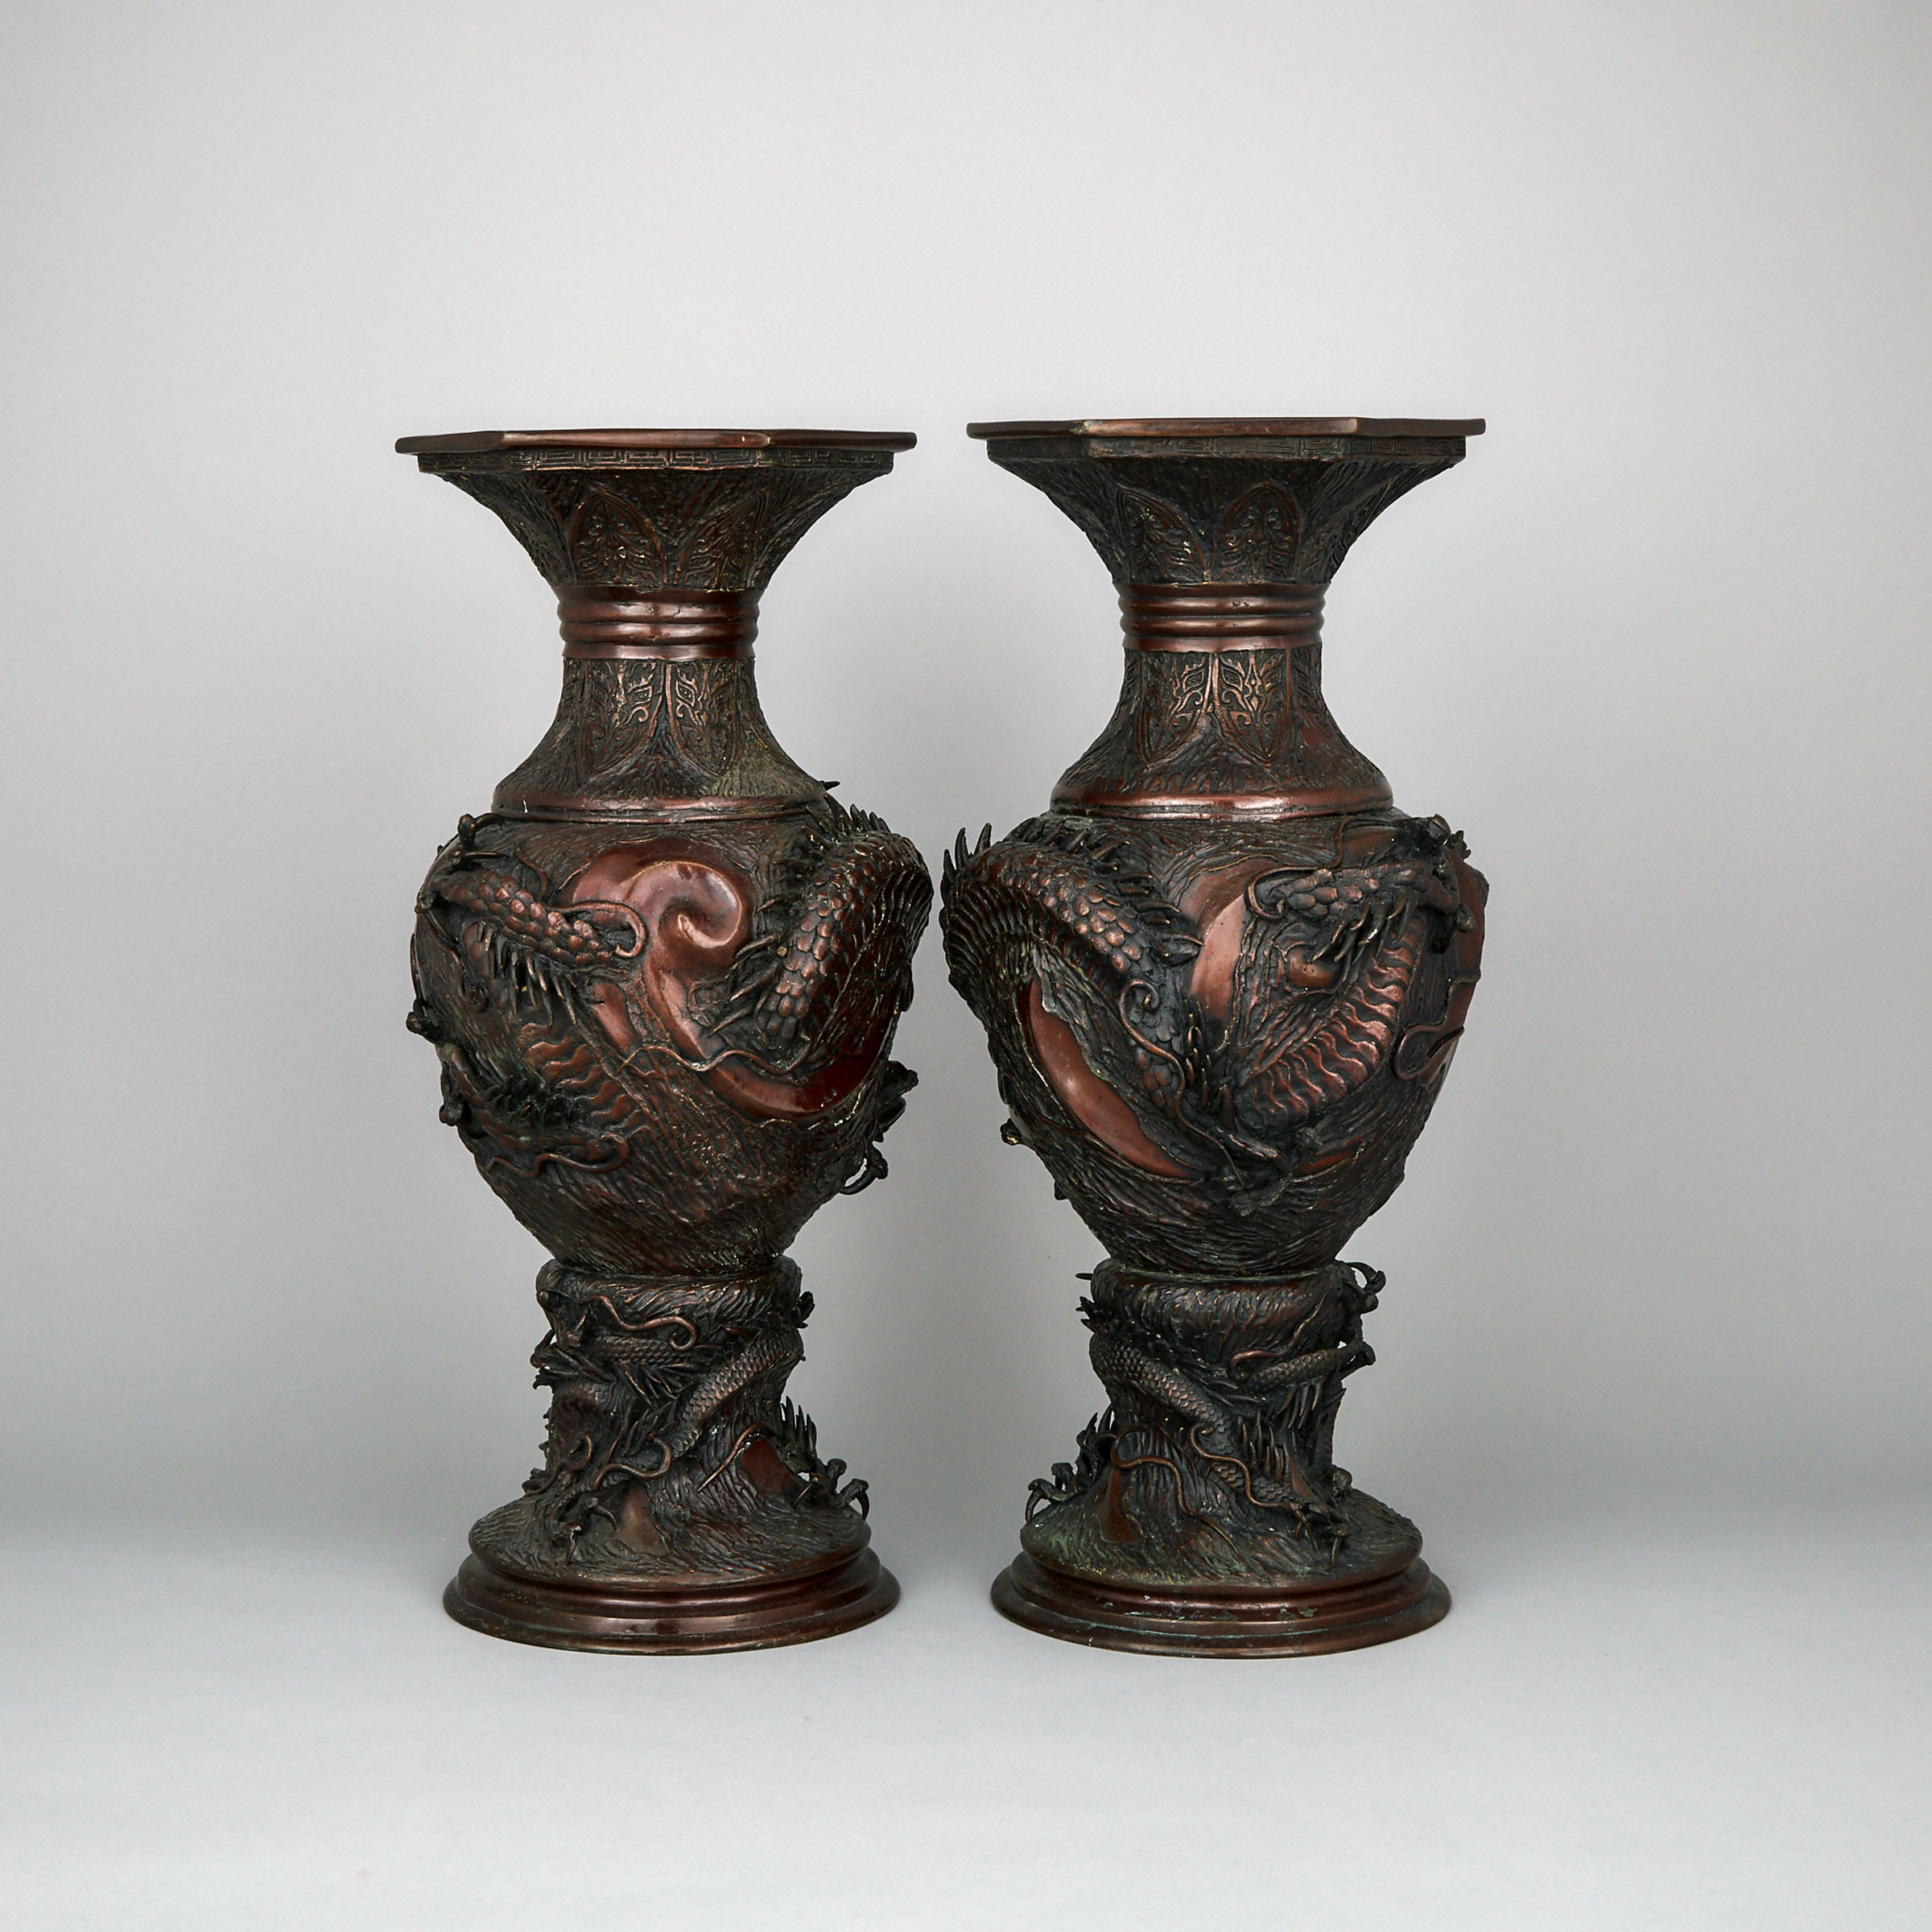 A Pair of Chinese Bronze Floor Vases, Circa 1900